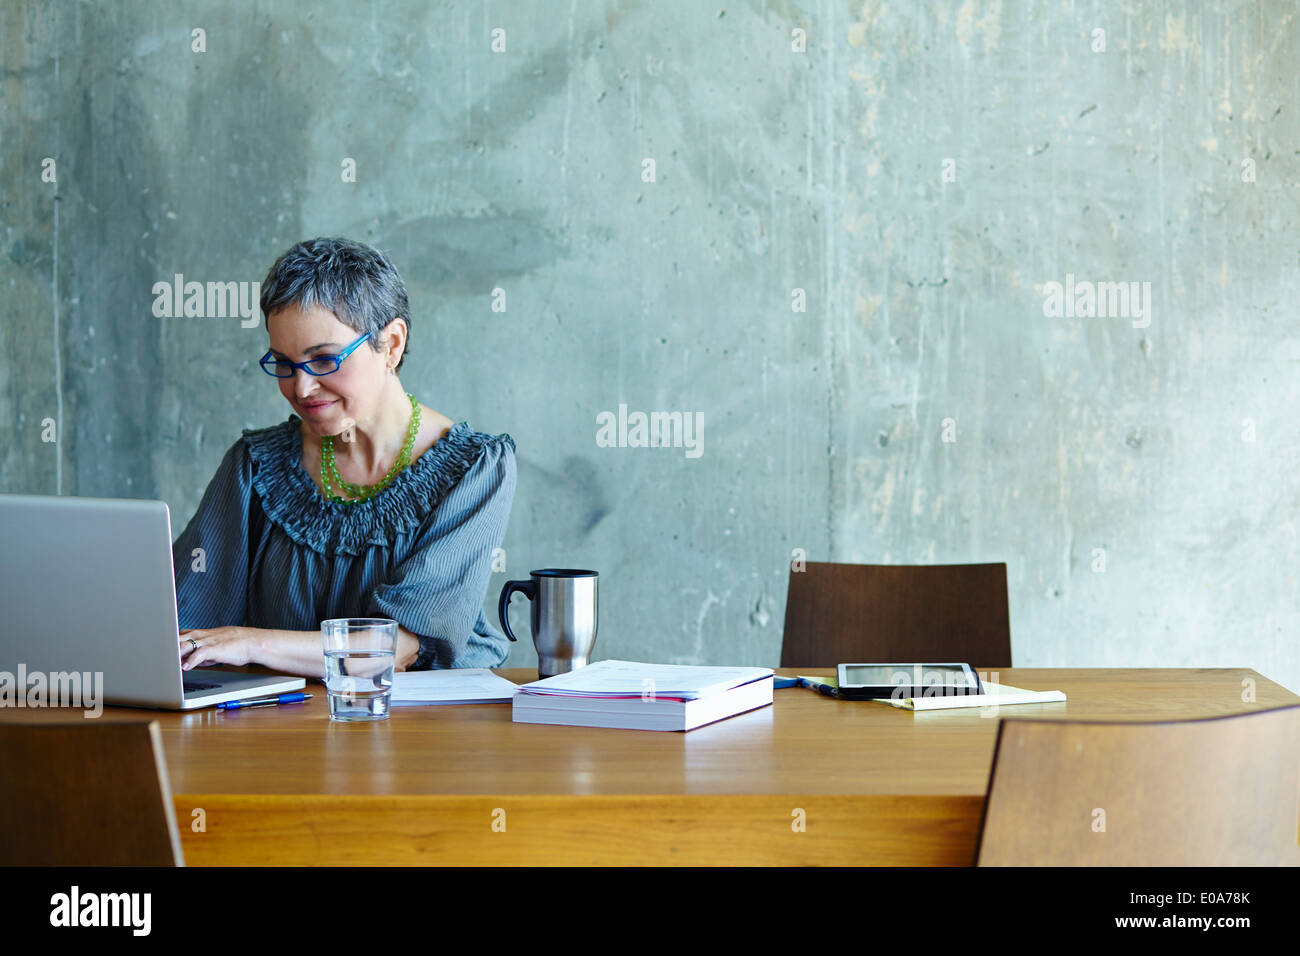 Femme mature at conference table working on laptop Photo Stock